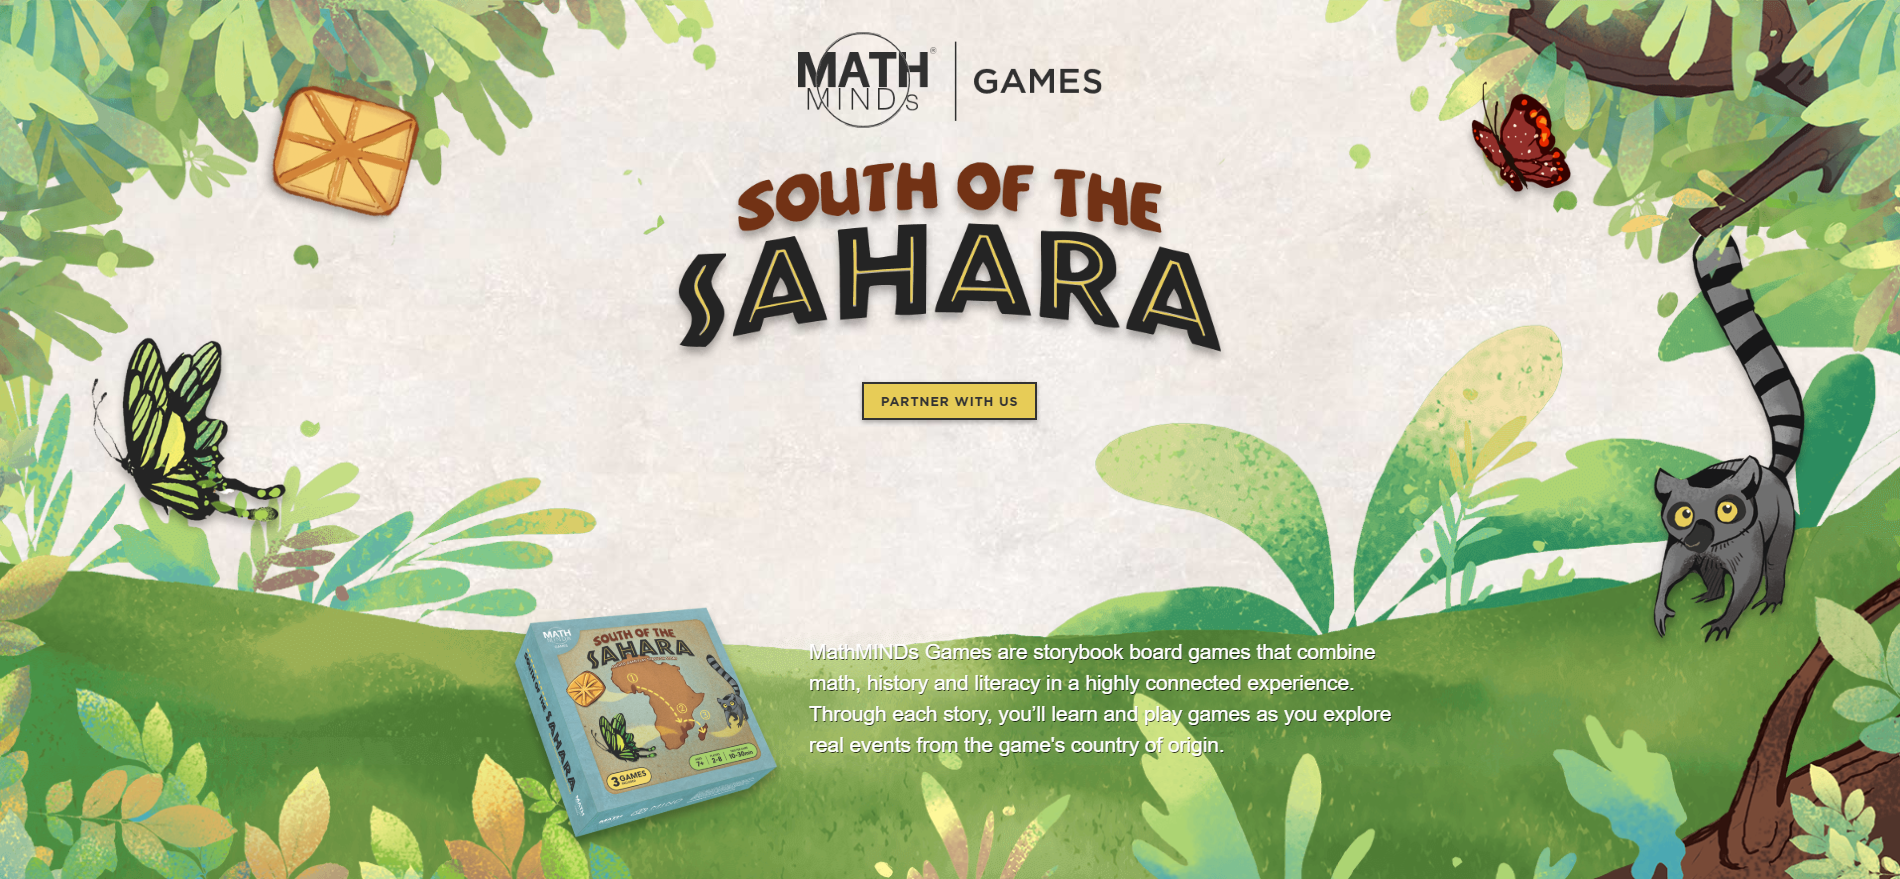 mathminds-games-webpage